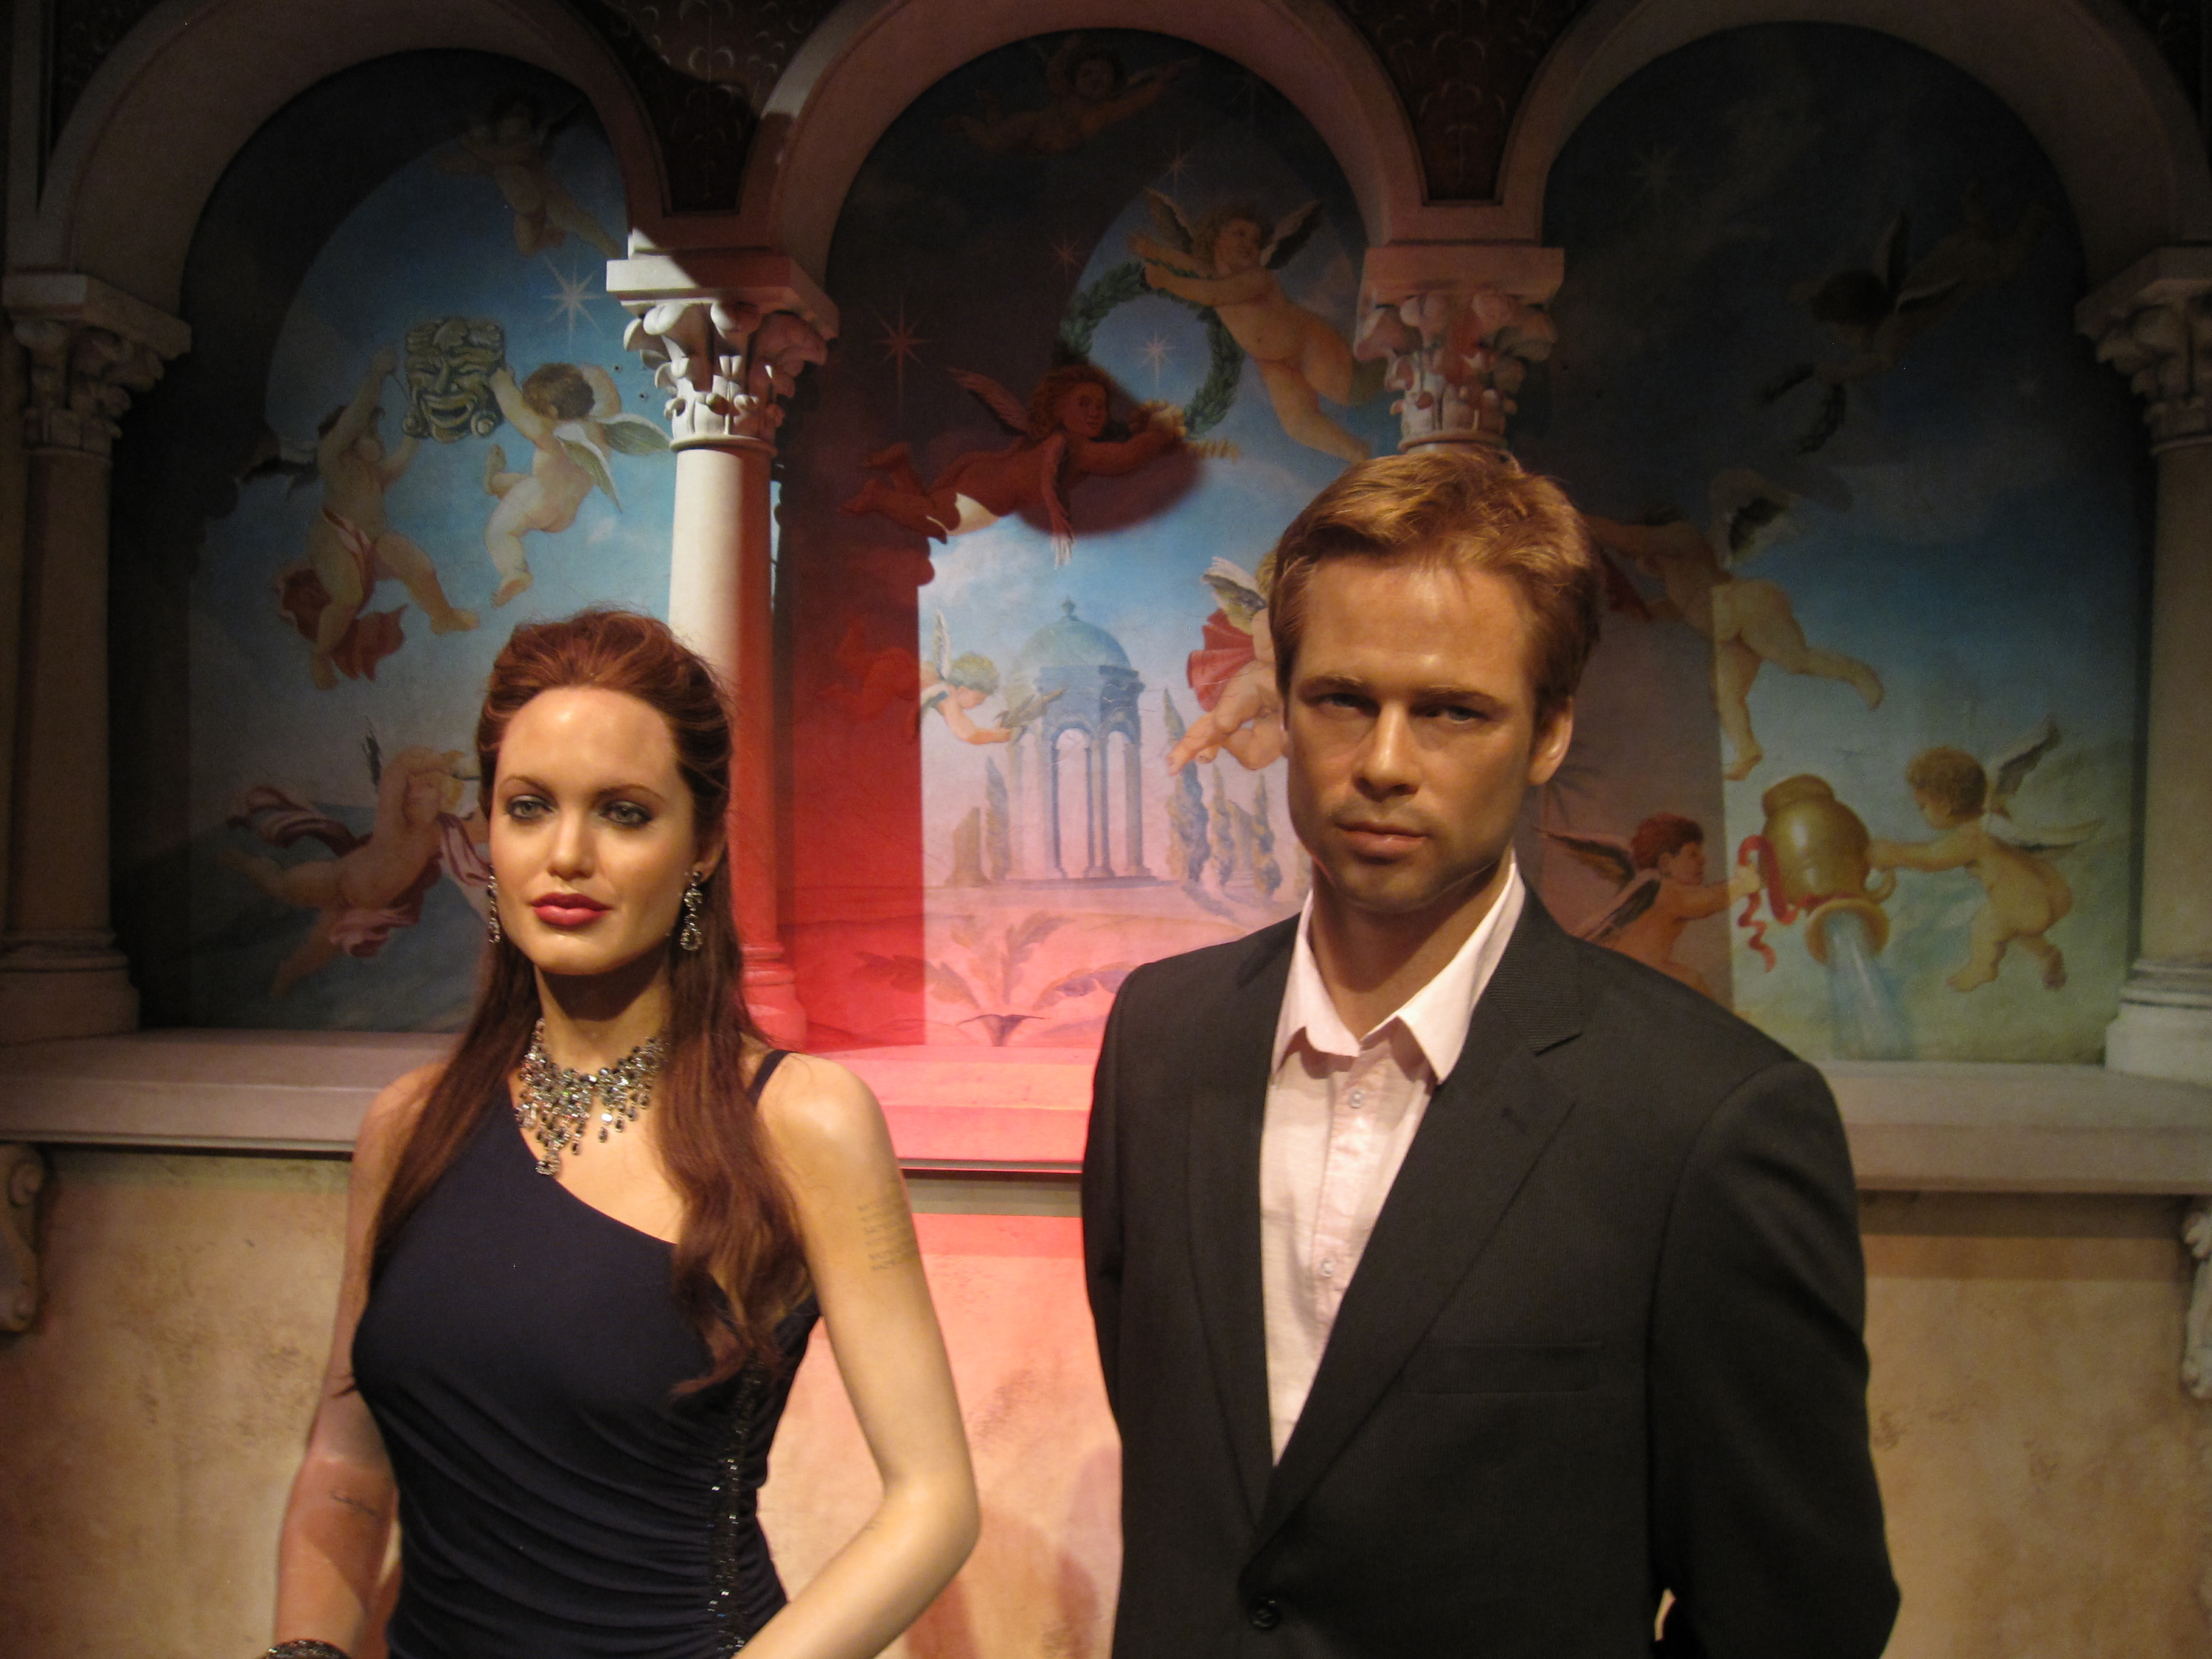 The worst-looking wax sculptures at Madame Tussauds in NYC